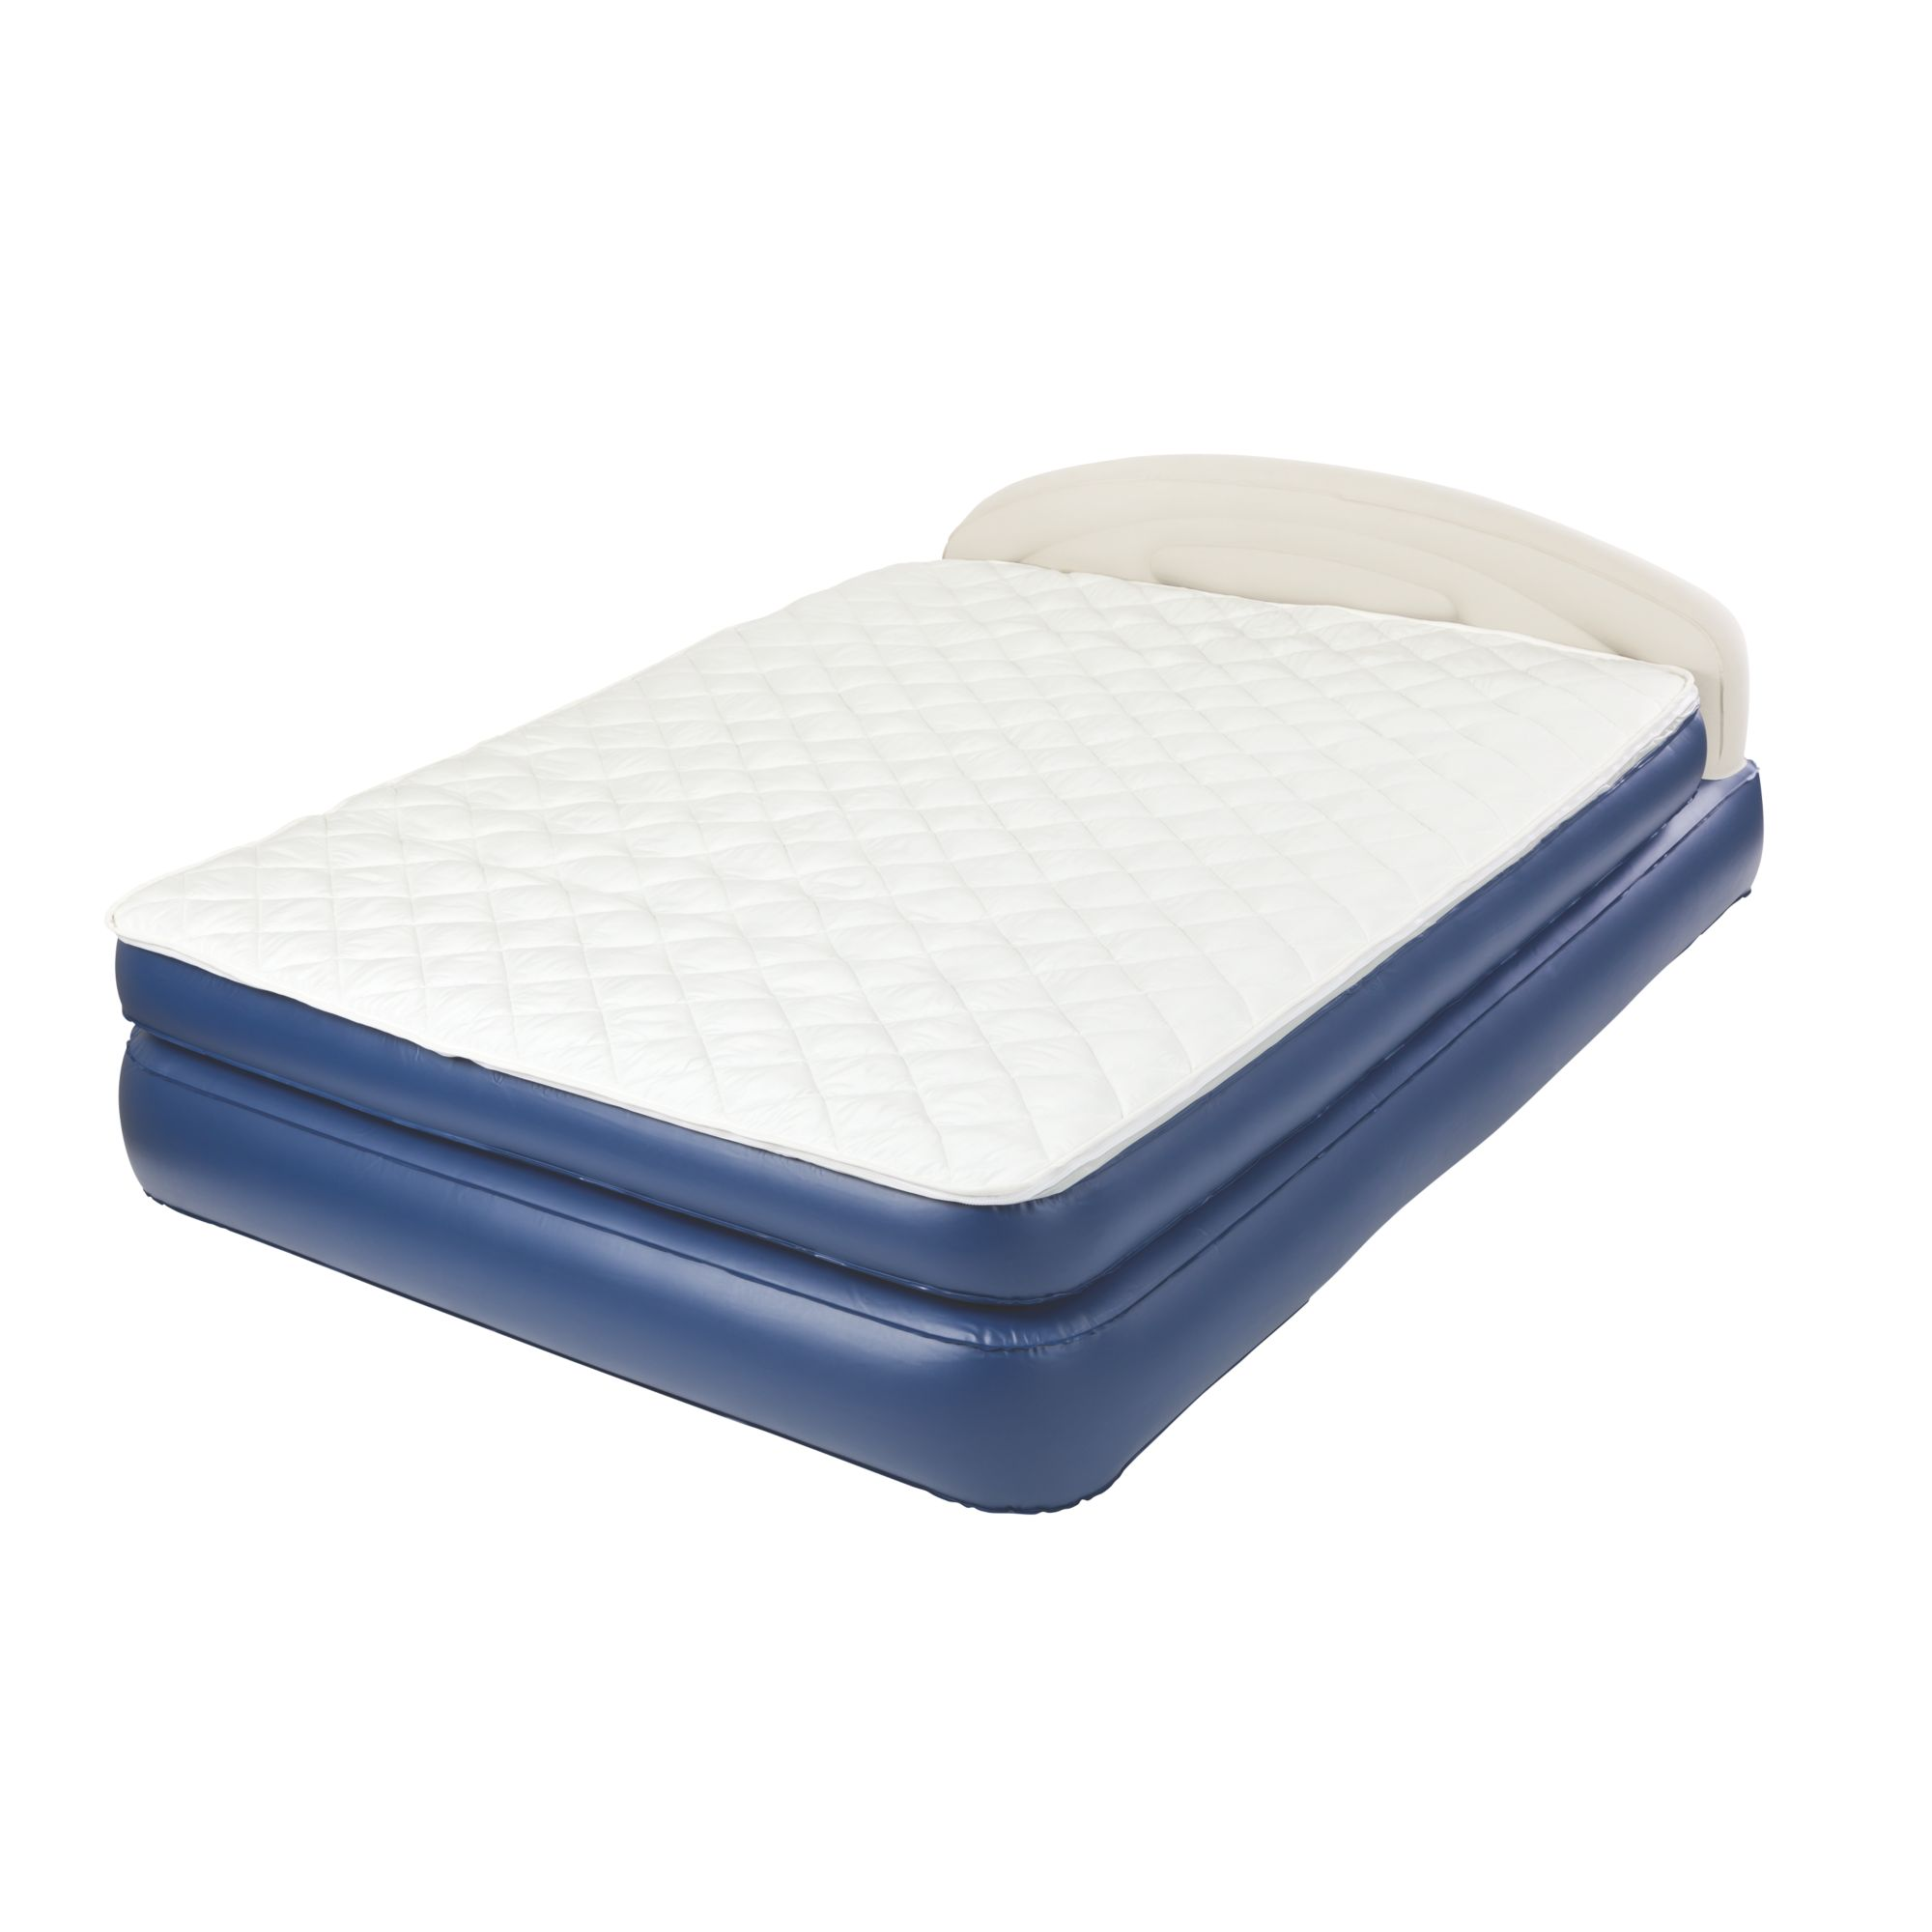 best buying guide comparison reviews mattress and air